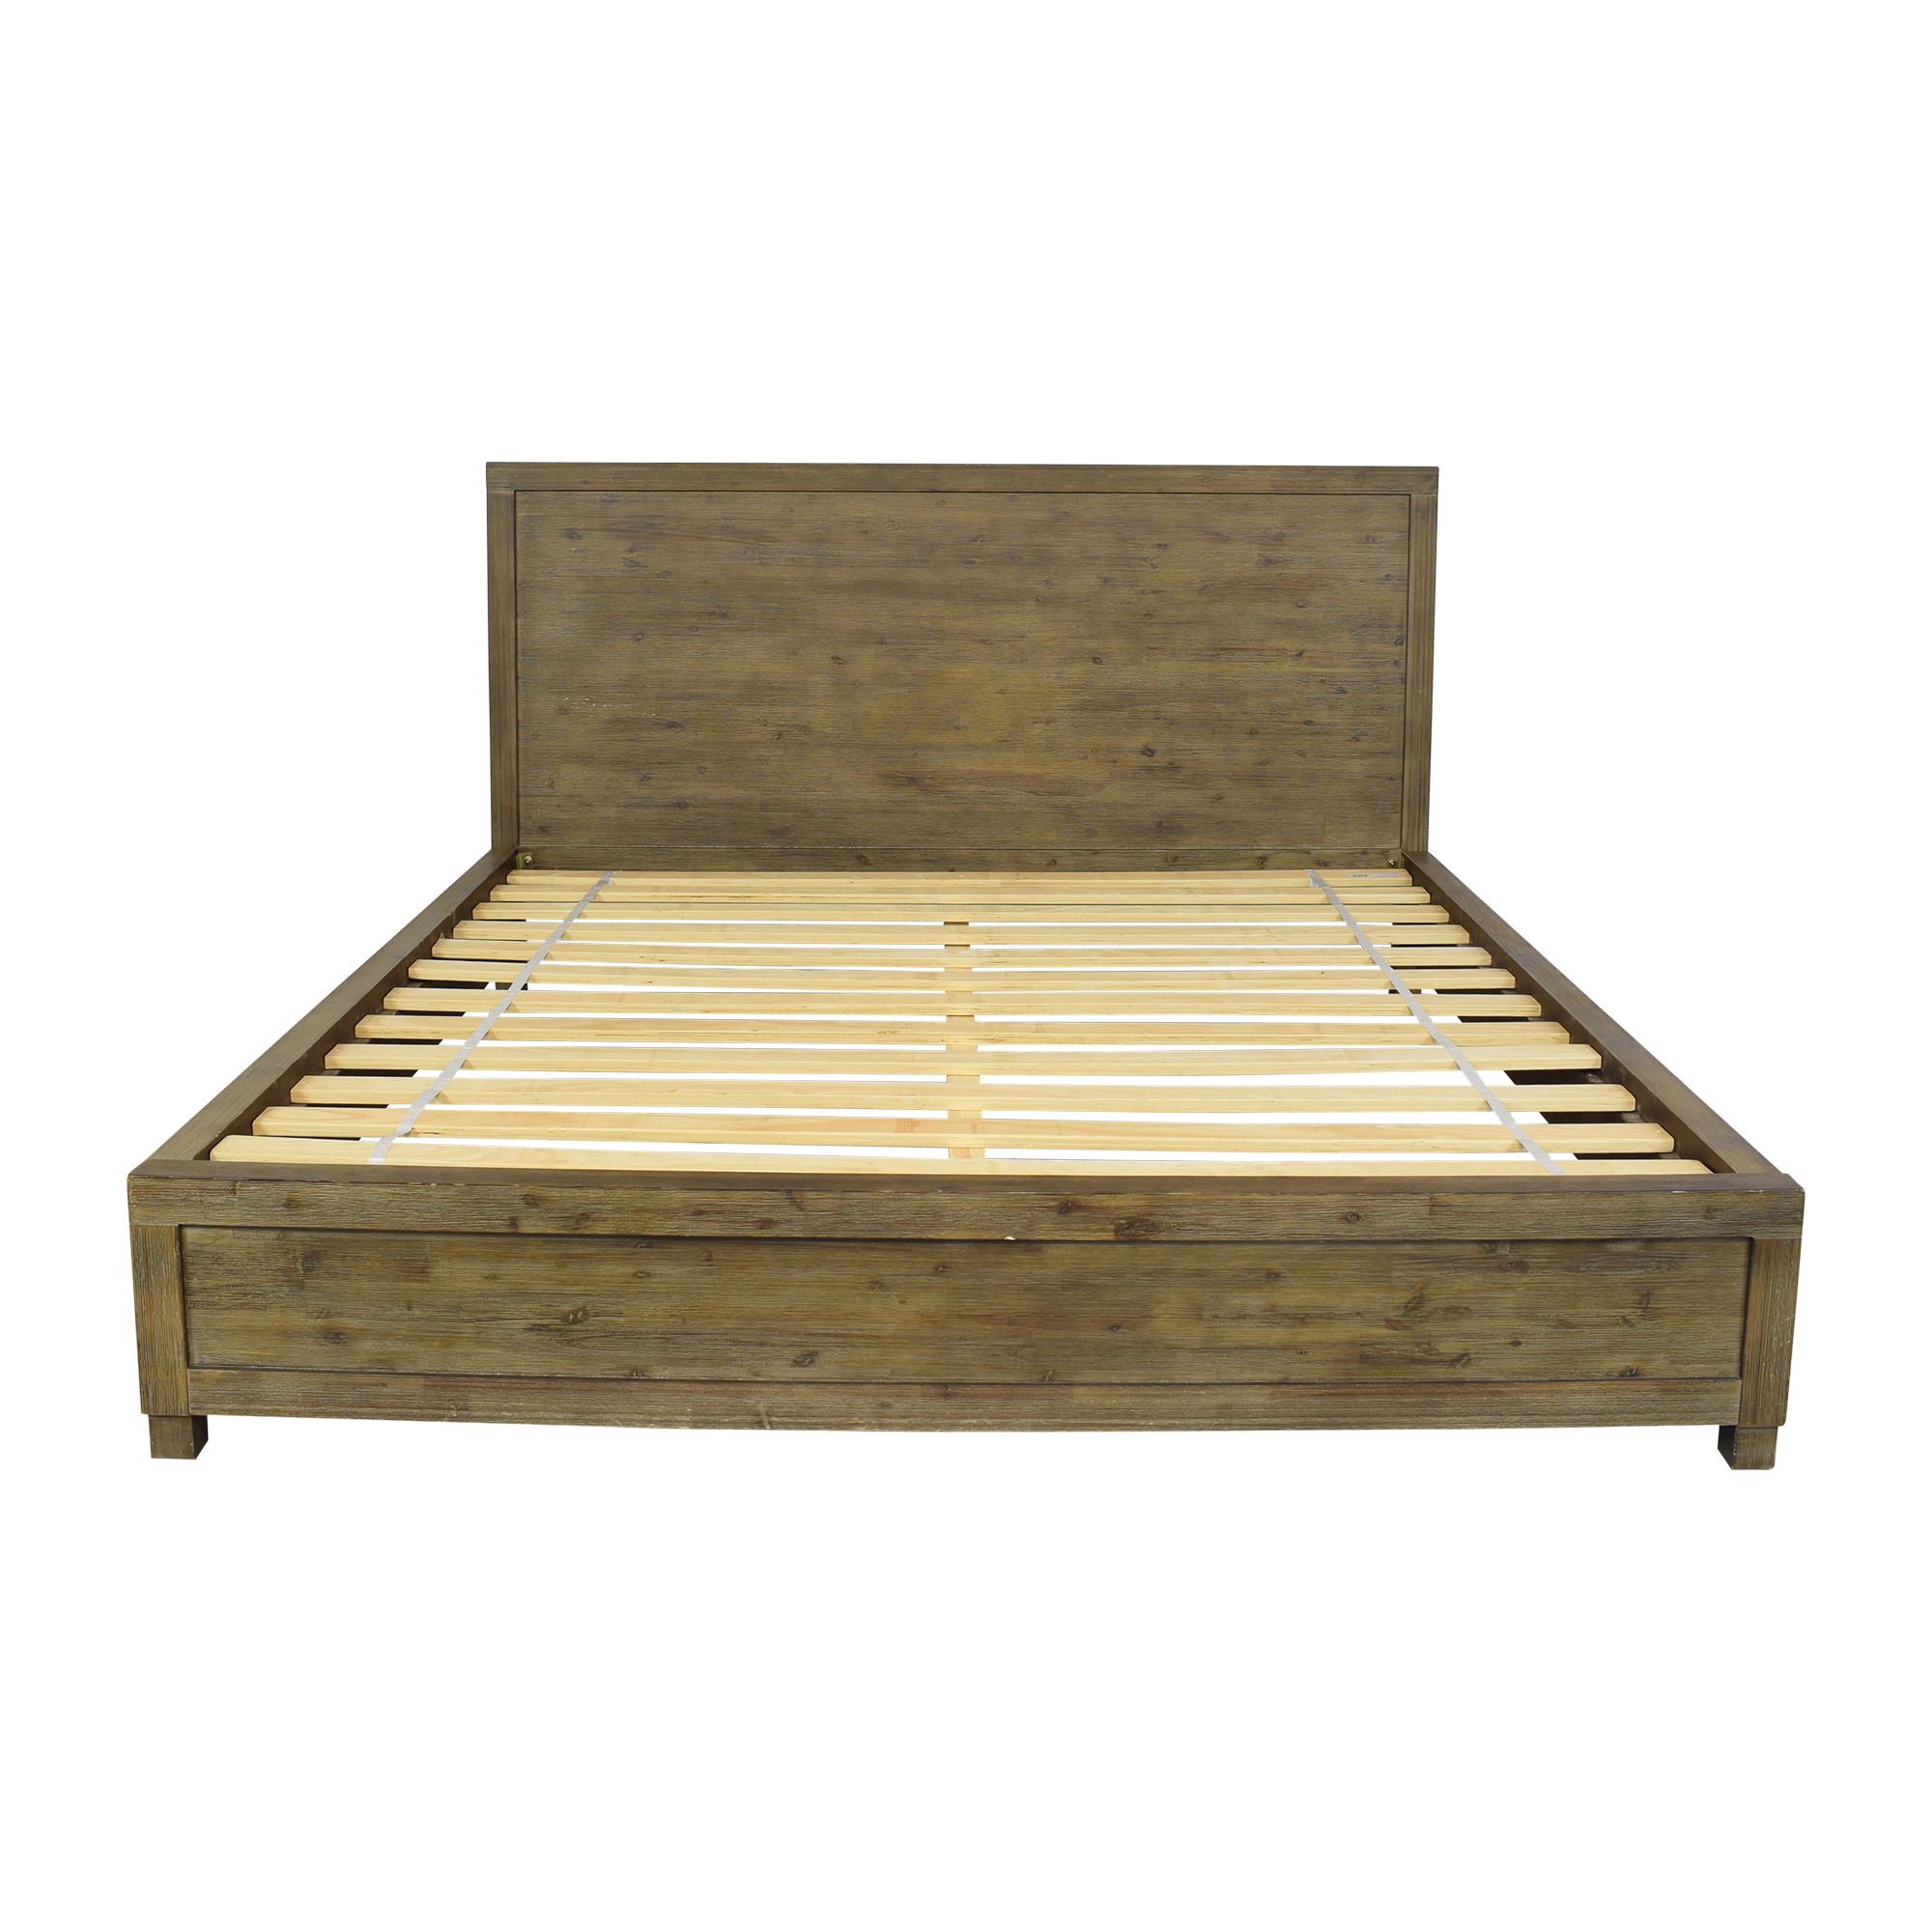 shop Macy's Macy's King Bed Frame online